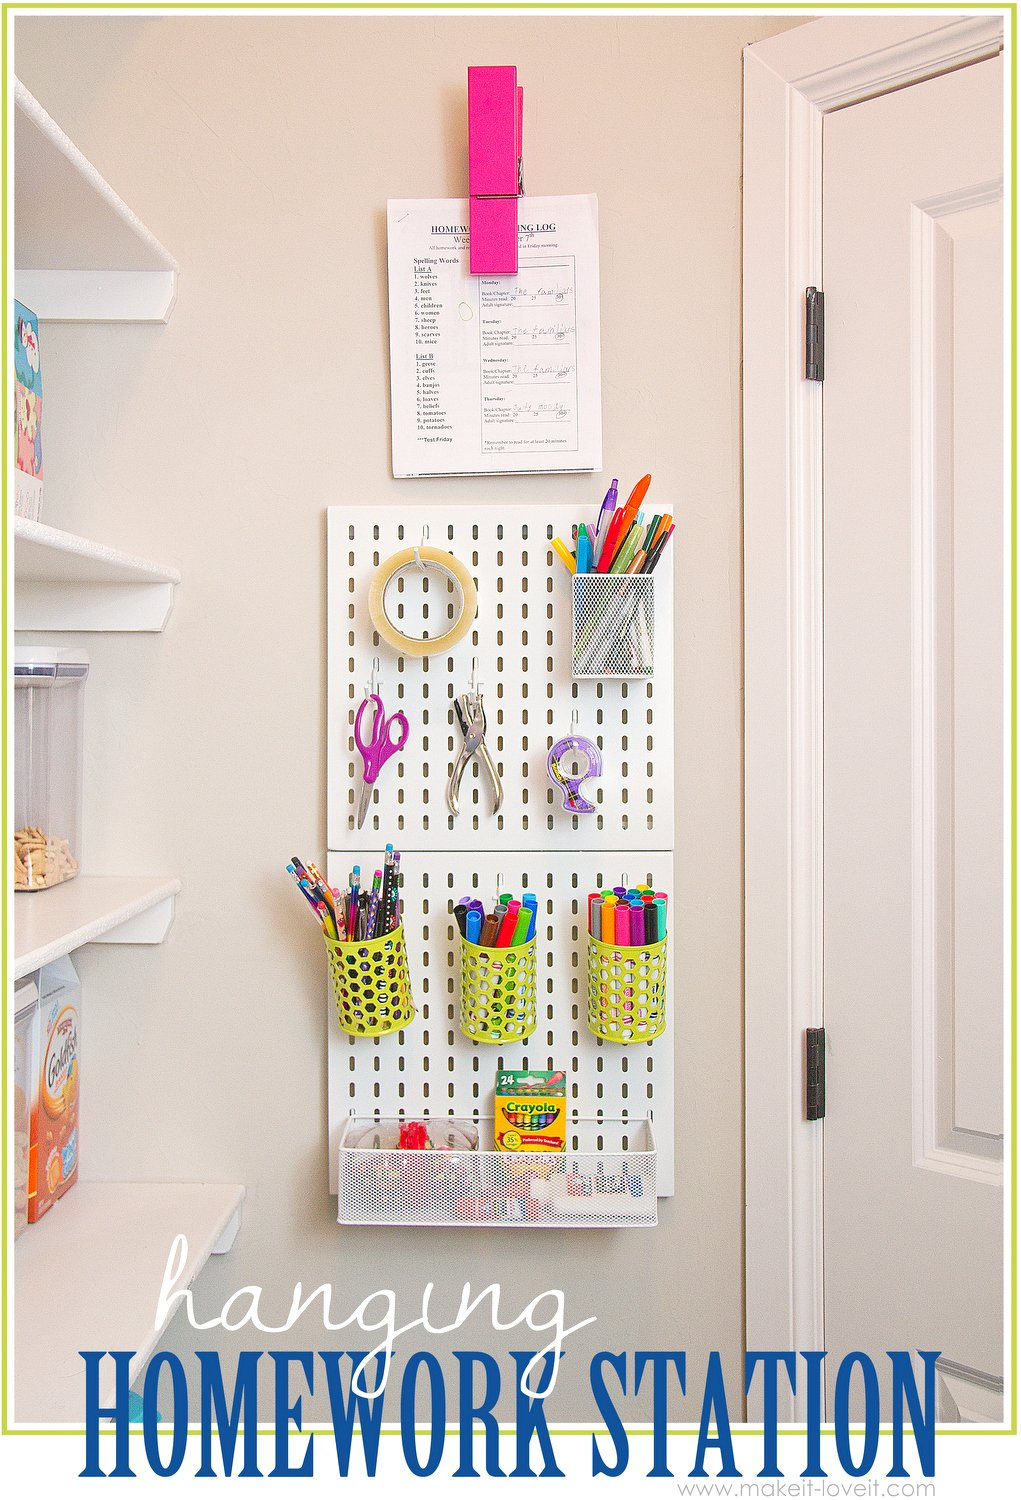 Hanging Homework Station (...or craft station!) | via Make It and Love it